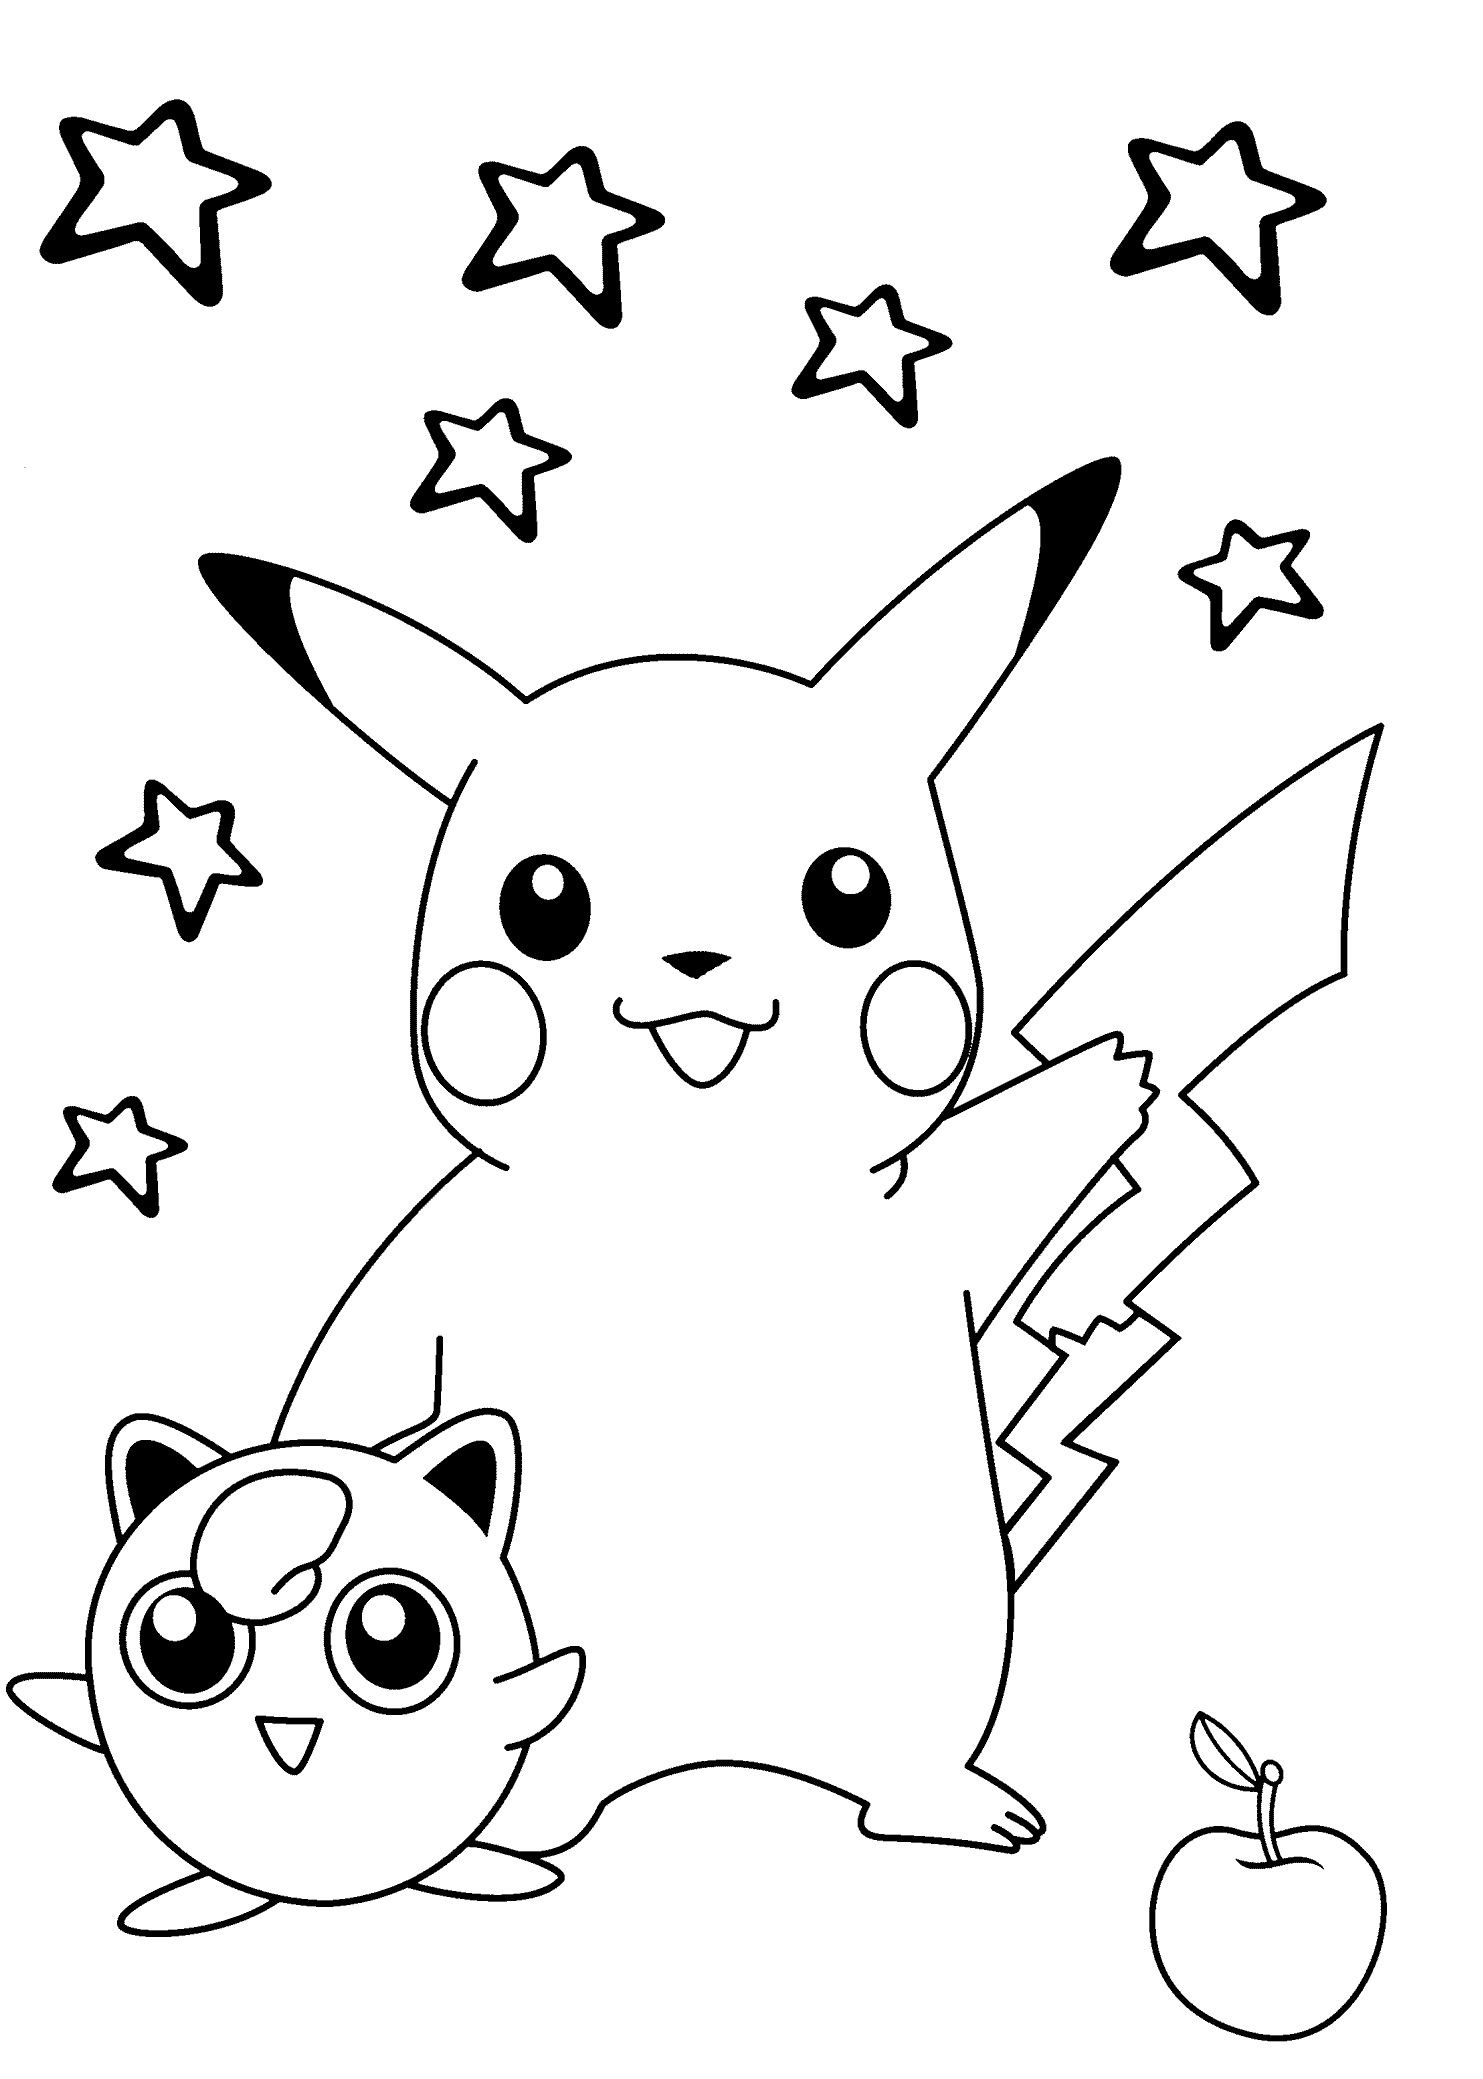 Pikachu Easter Coloring Pages Through The Thousands Of Photos On